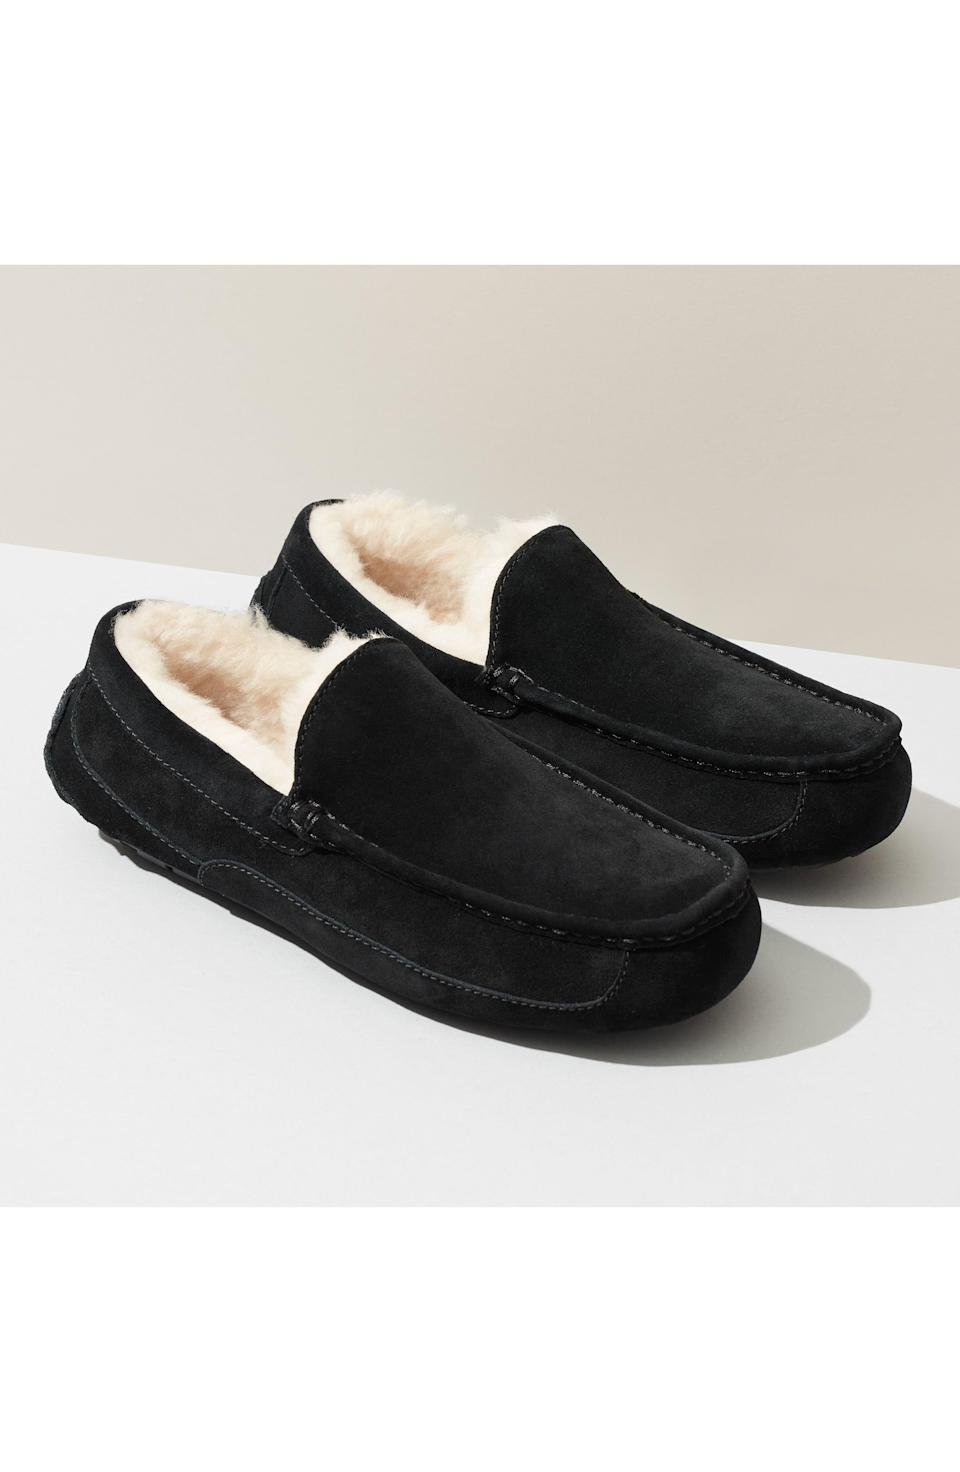 """<p><strong>UGG</strong></p><p>nordstrom.com</p><p><strong>$82.46</strong></p><p><a href=""""https://go.redirectingat.com?id=74968X1596630&url=https%3A%2F%2Fwww.nordstrom.com%2Fs%2Fugg-ascot-slipper-men%2F4922169&sref=https%3A%2F%2Fwww.womenshealthmag.com%2Flife%2Fg19924022%2Fbest-gifts-for-parents%2F"""" rel=""""nofollow noopener"""" target=""""_blank"""" data-ylk=""""slk:Shop Now"""" class=""""link rapid-noclick-resp"""">Shop Now</a></p><p>Made from wool but designed to feel like genuine shearling, these slippers will have your parents feeling like they're walking on clouds. The rubber soles are perfect for indoor and outdoor use and the ease of the slip-on style will make for a new obsession in your parent's household. Guaranteed. </p>"""